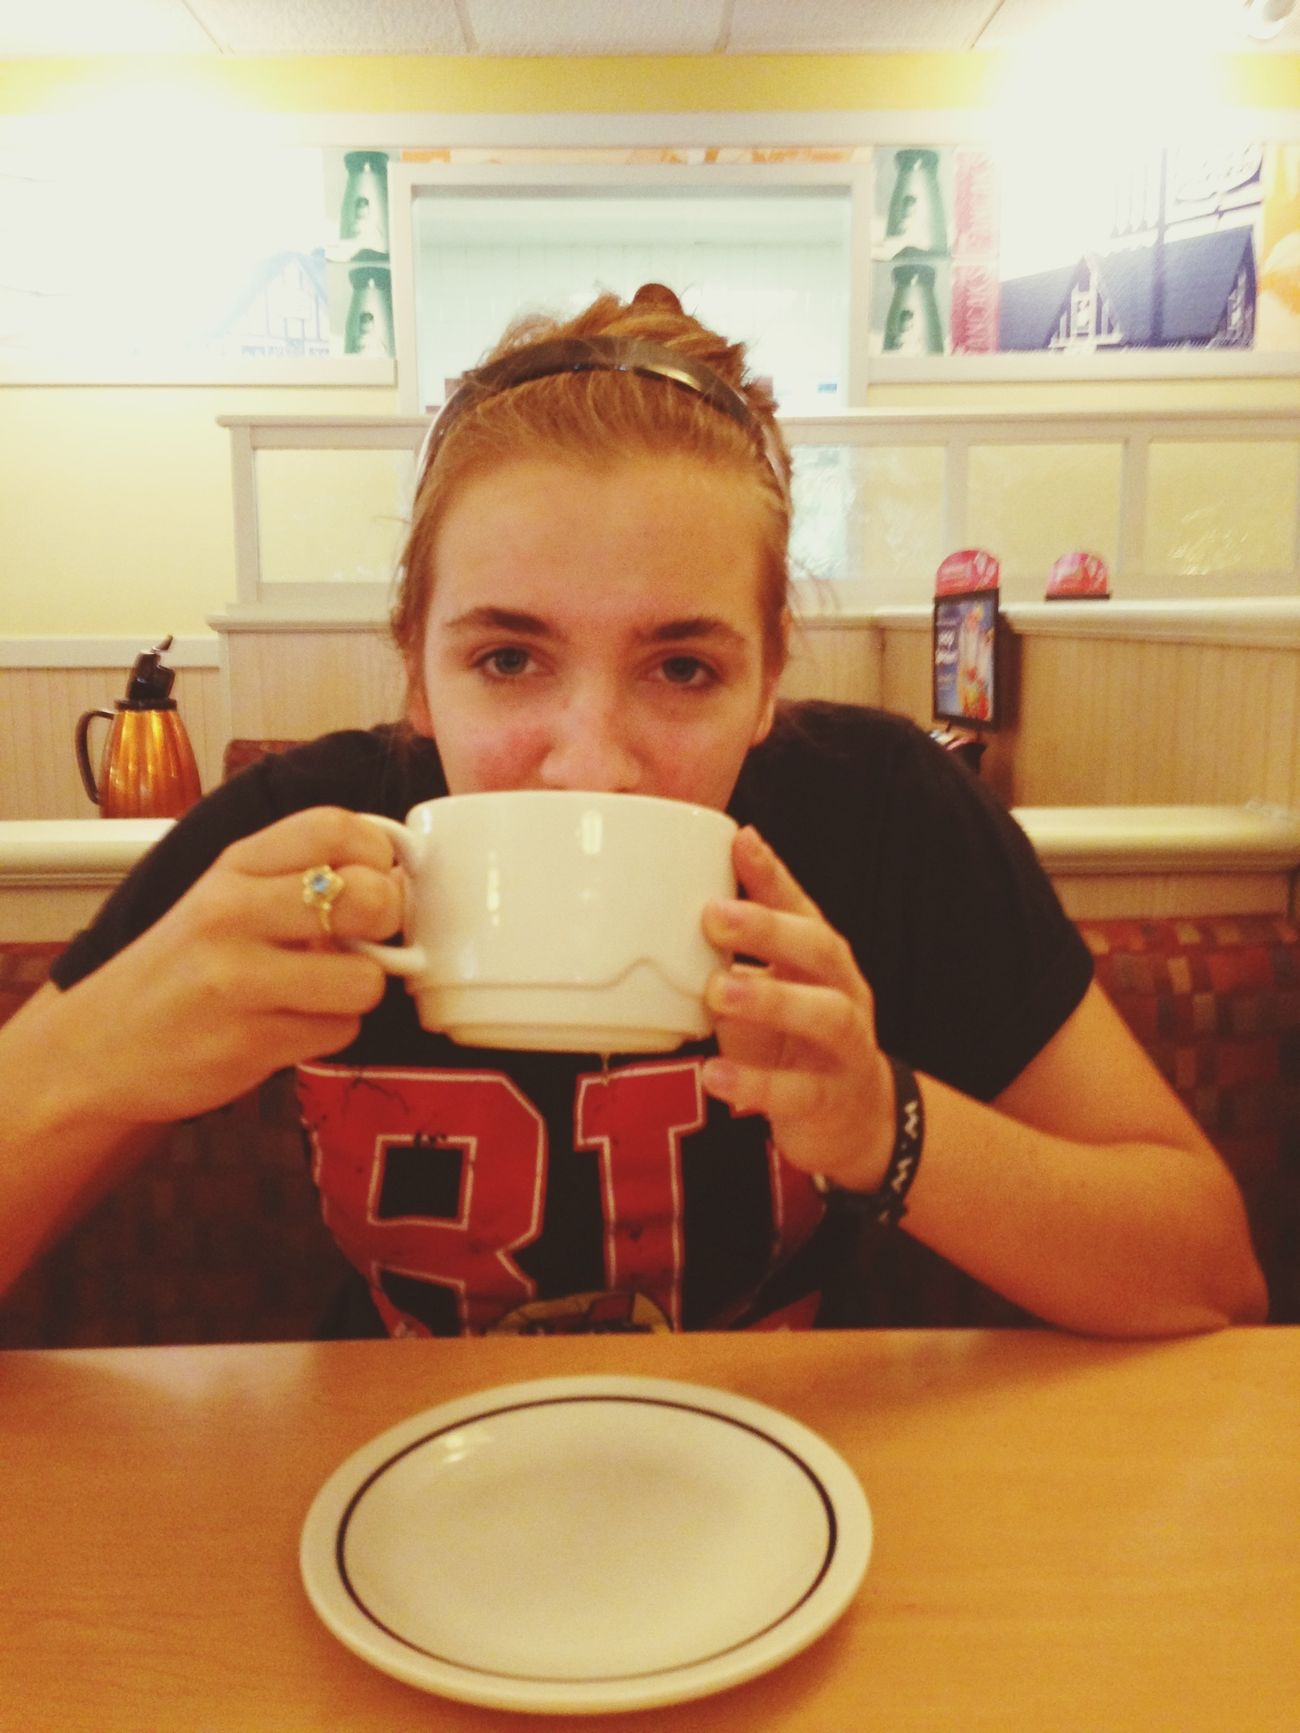 Aye big ass hot chocolate @ IHOP☕